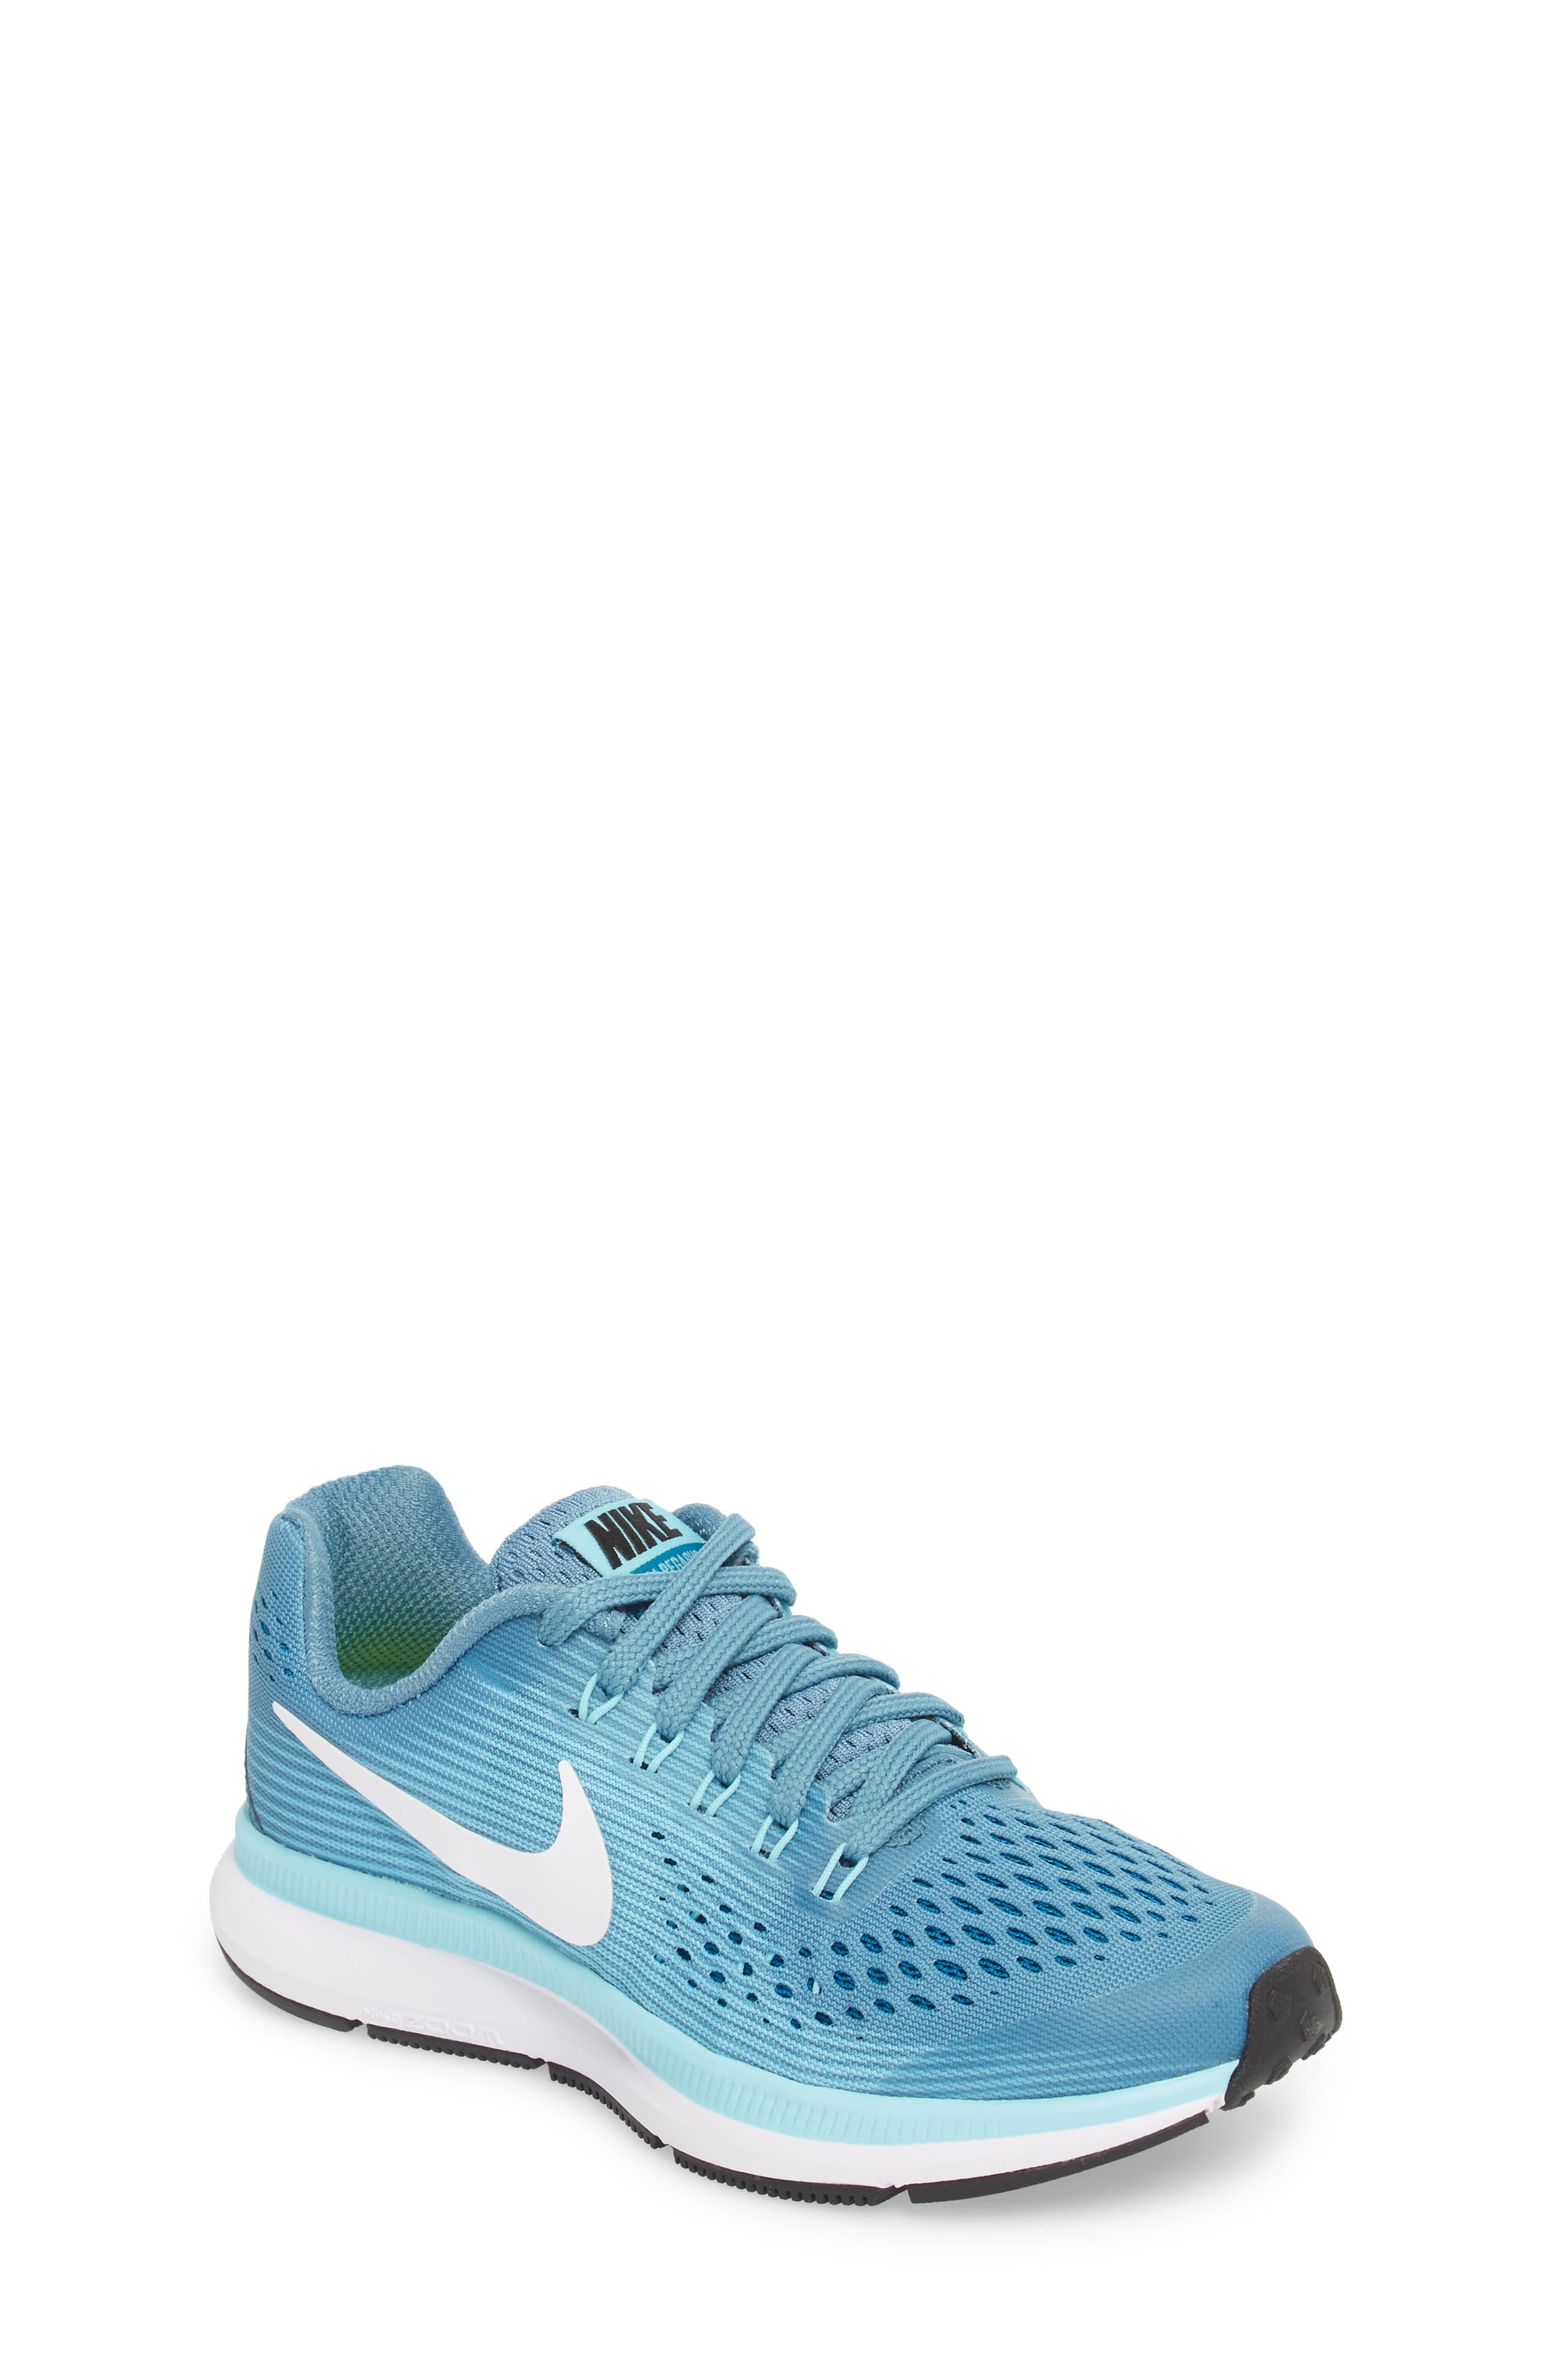 Zoom Pegasus 34 Sneaker,                         Main,                         color,